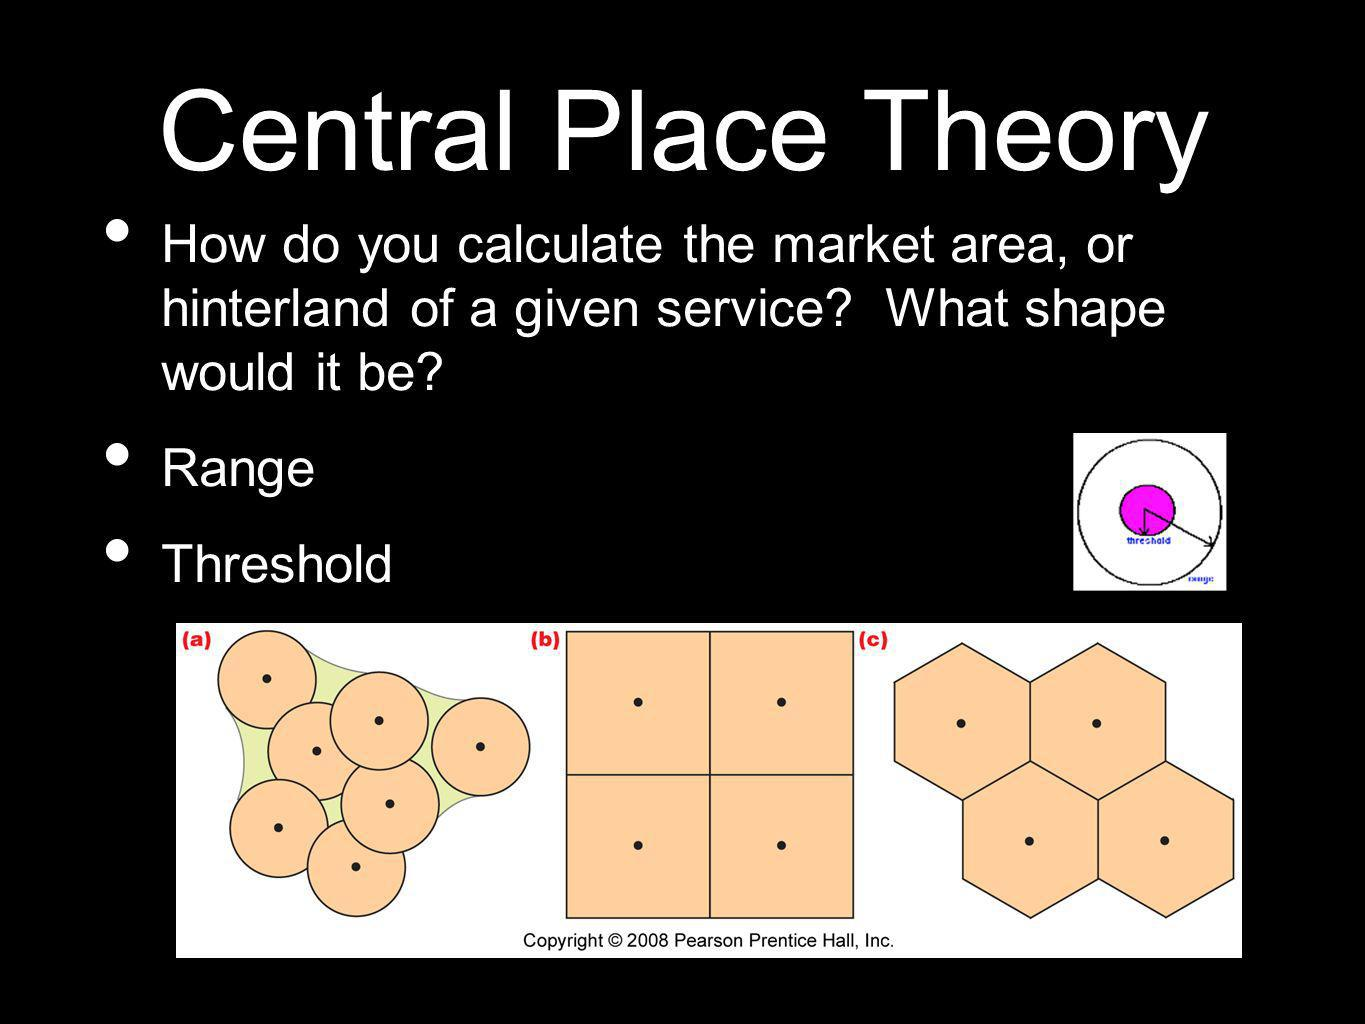 Central Place Theory How do you calculate the market area, or hinterland of a given service What shape would it be